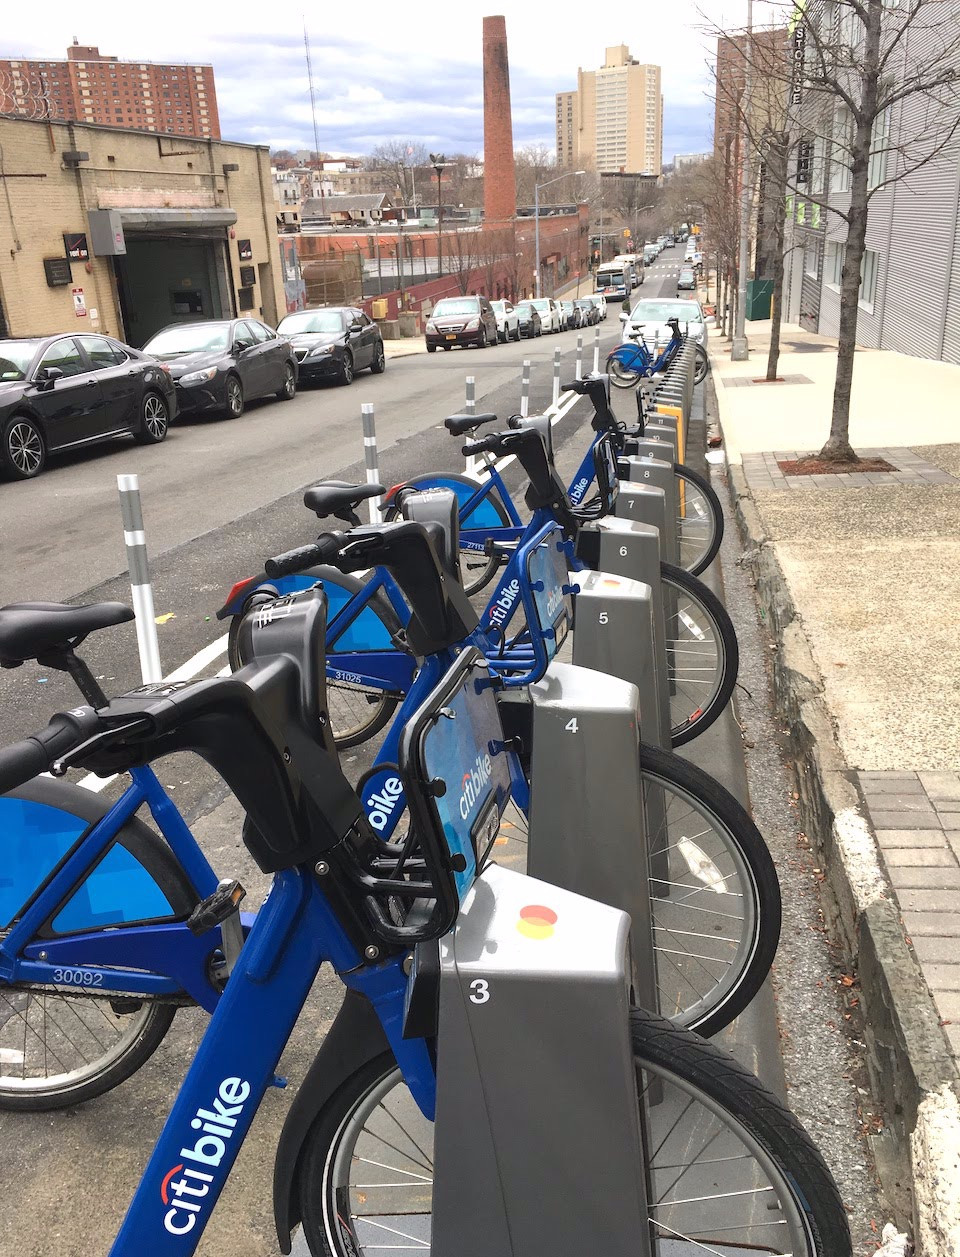 New Citi Bike stations arrive in Central Harlem and the South Bronx starting next Monday